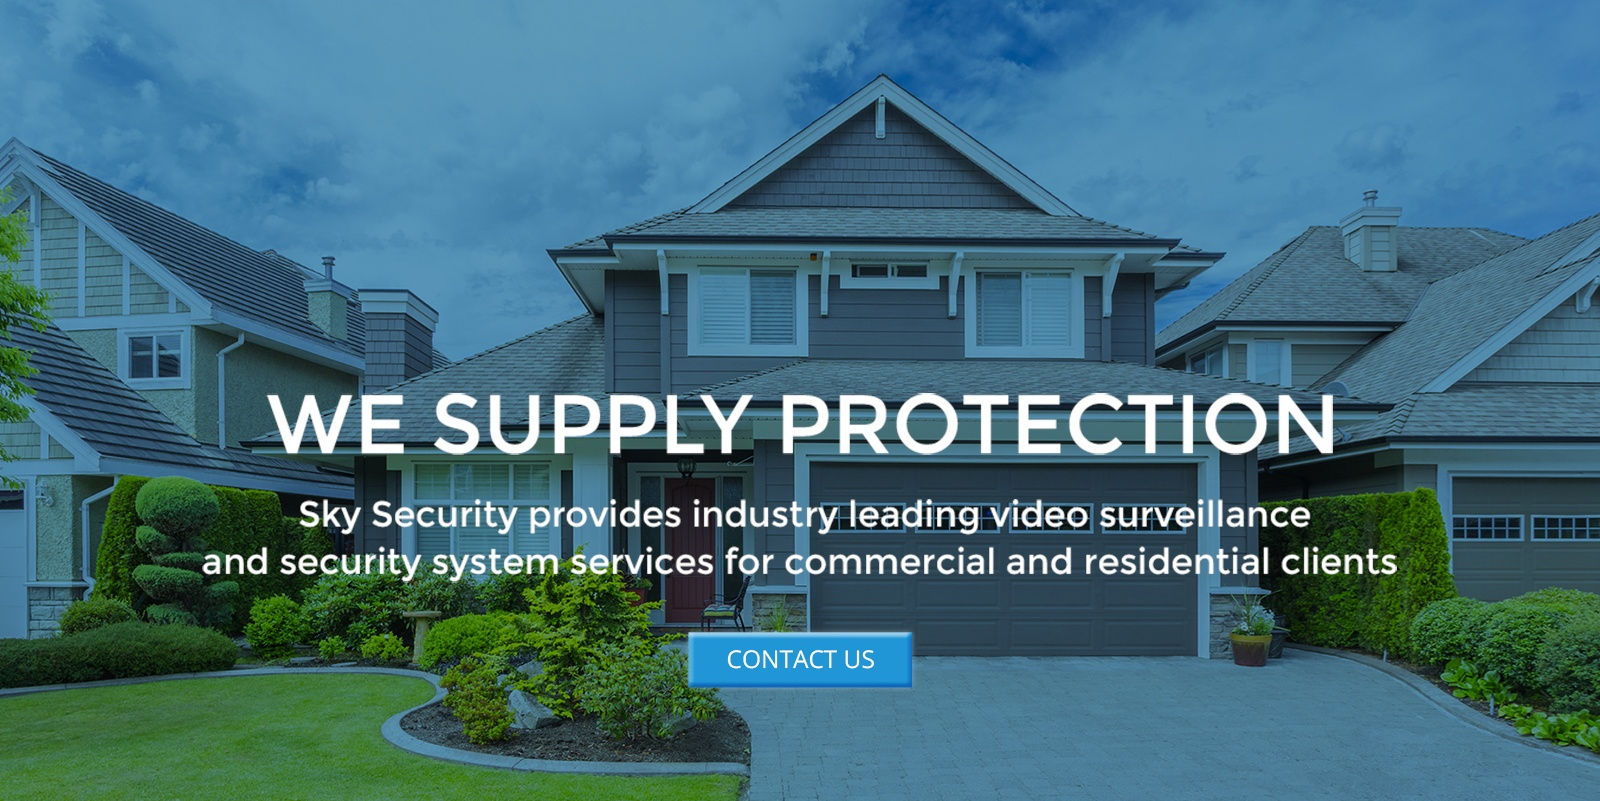 Sky Security Supplies Protection For Residential And Commercial Clients